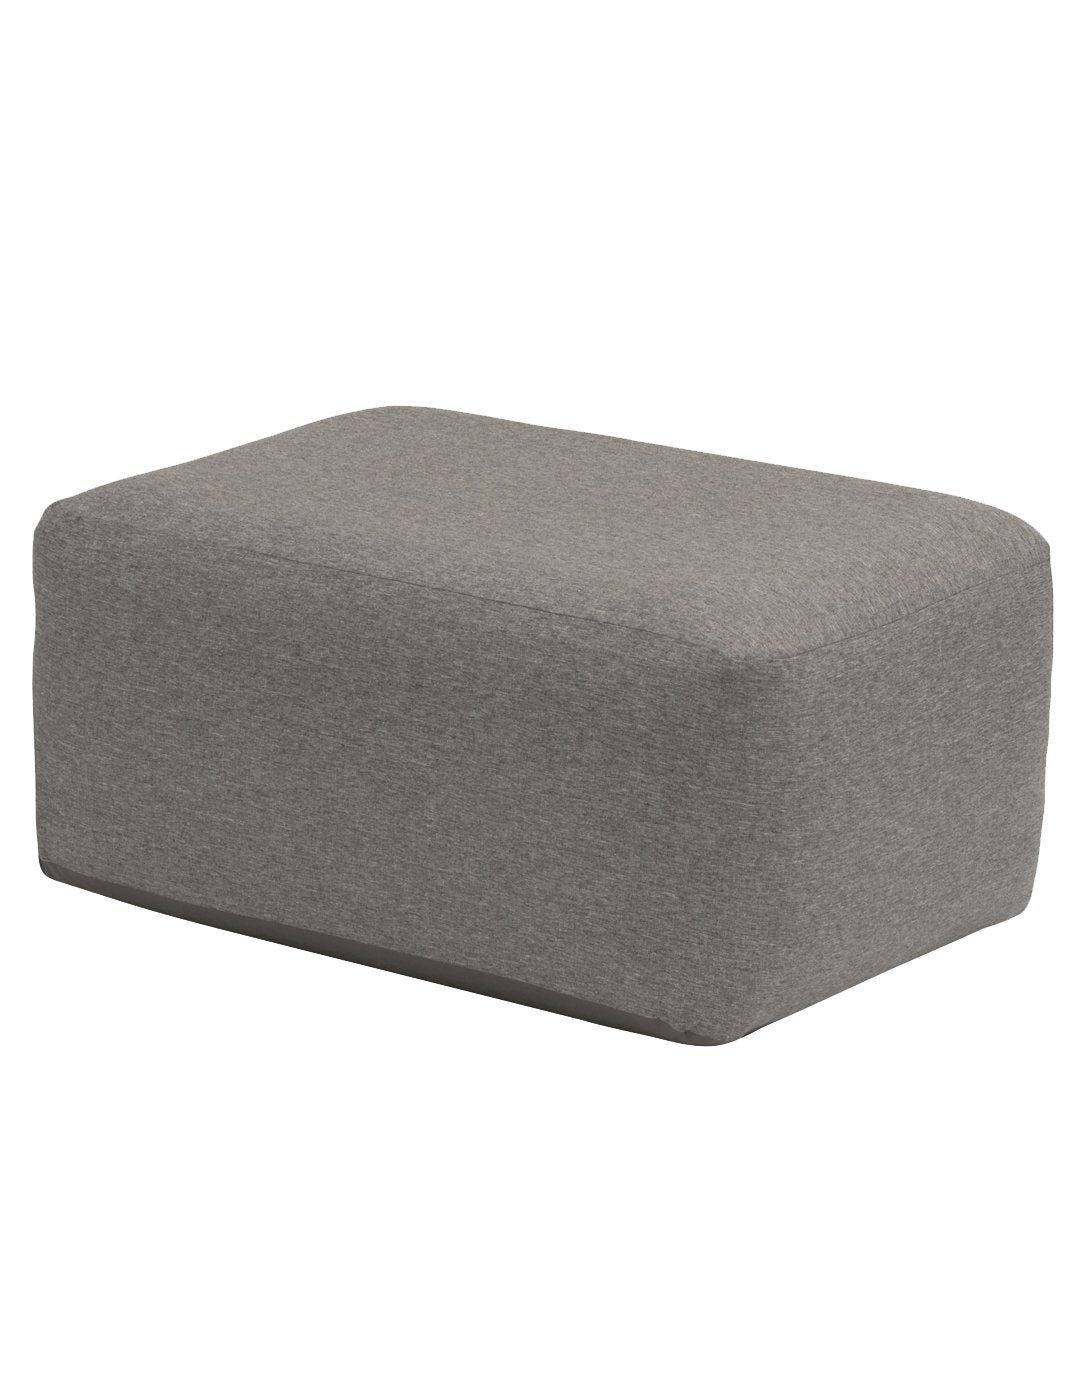 Image of Outwell Lake Erie Foot Stool